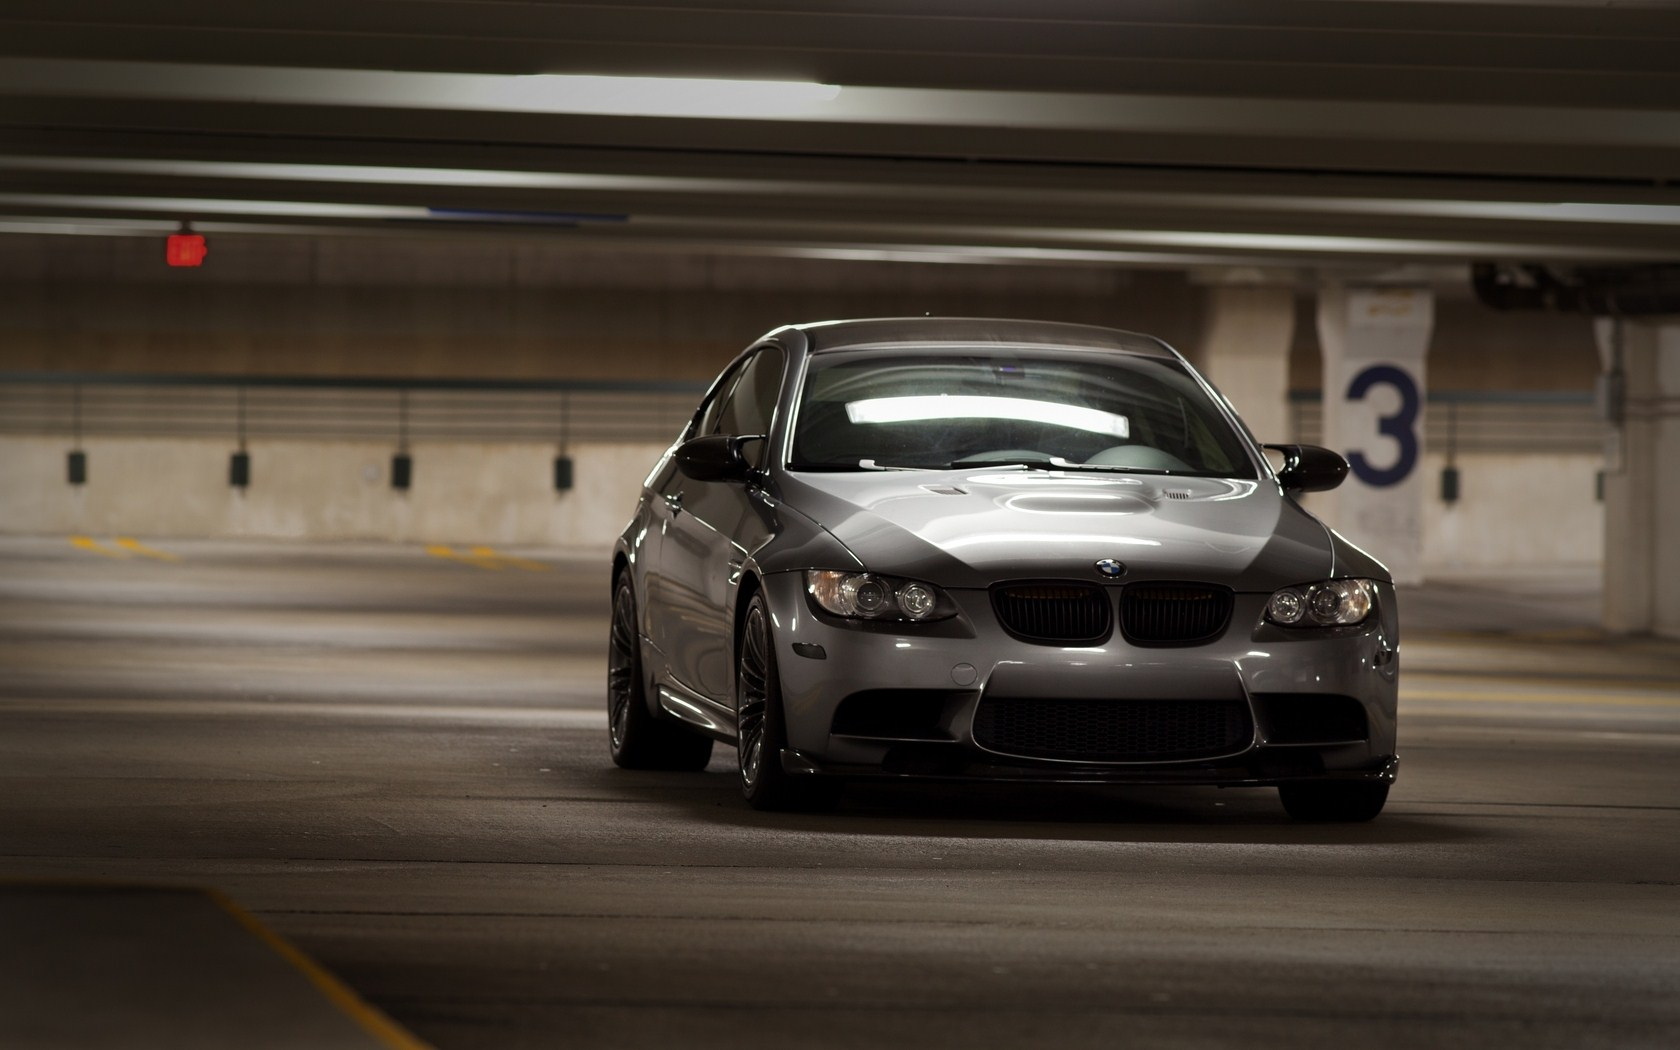 Gray BMW Garage Awesome HD Wallpaper